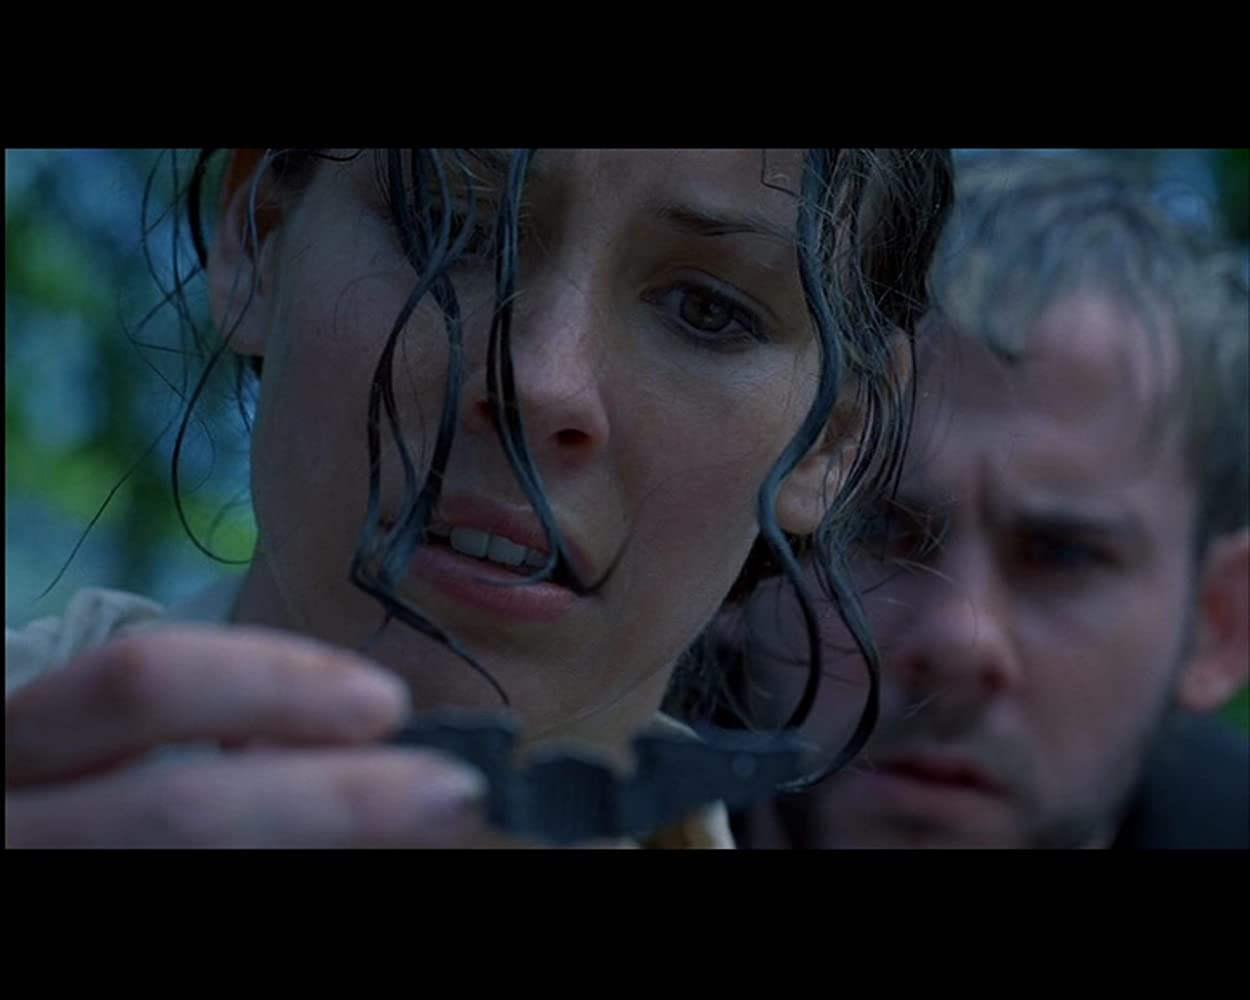 Dominic Monaghan and Evangeline Lilly in Lost (2004)